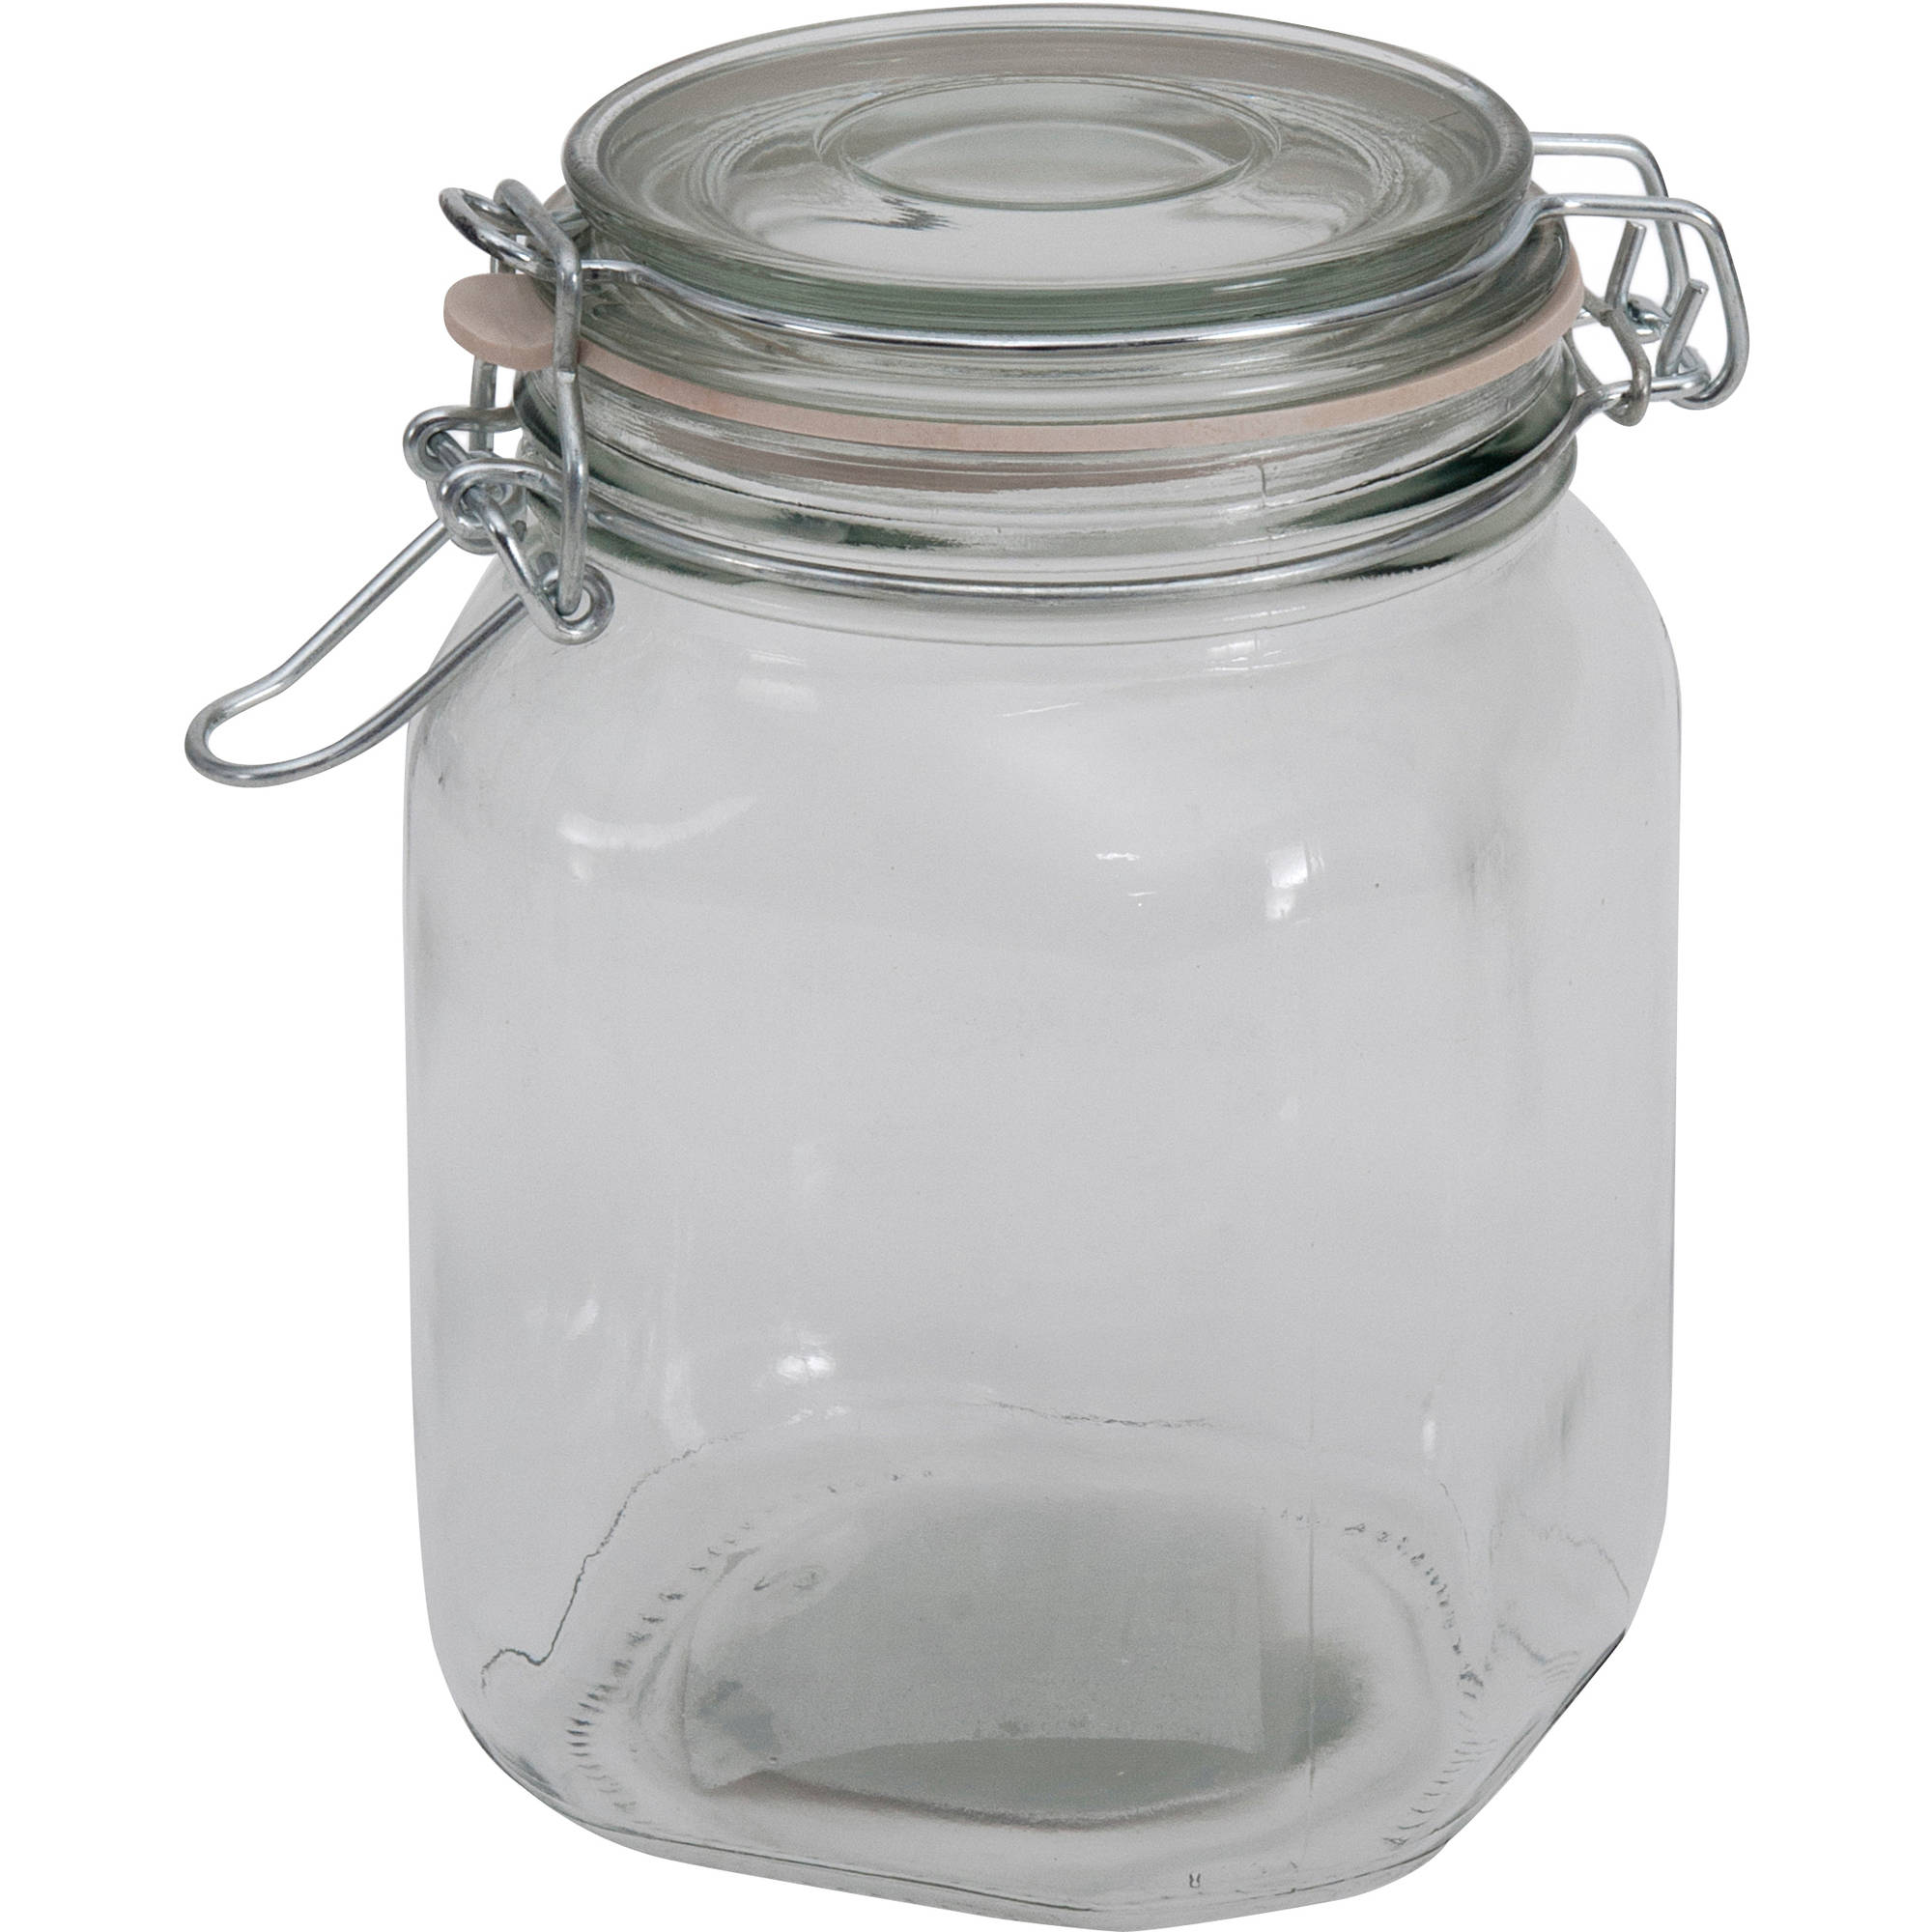 mainstays 38 oz clear glass jar with clamp lid - Glass Containers With Lids